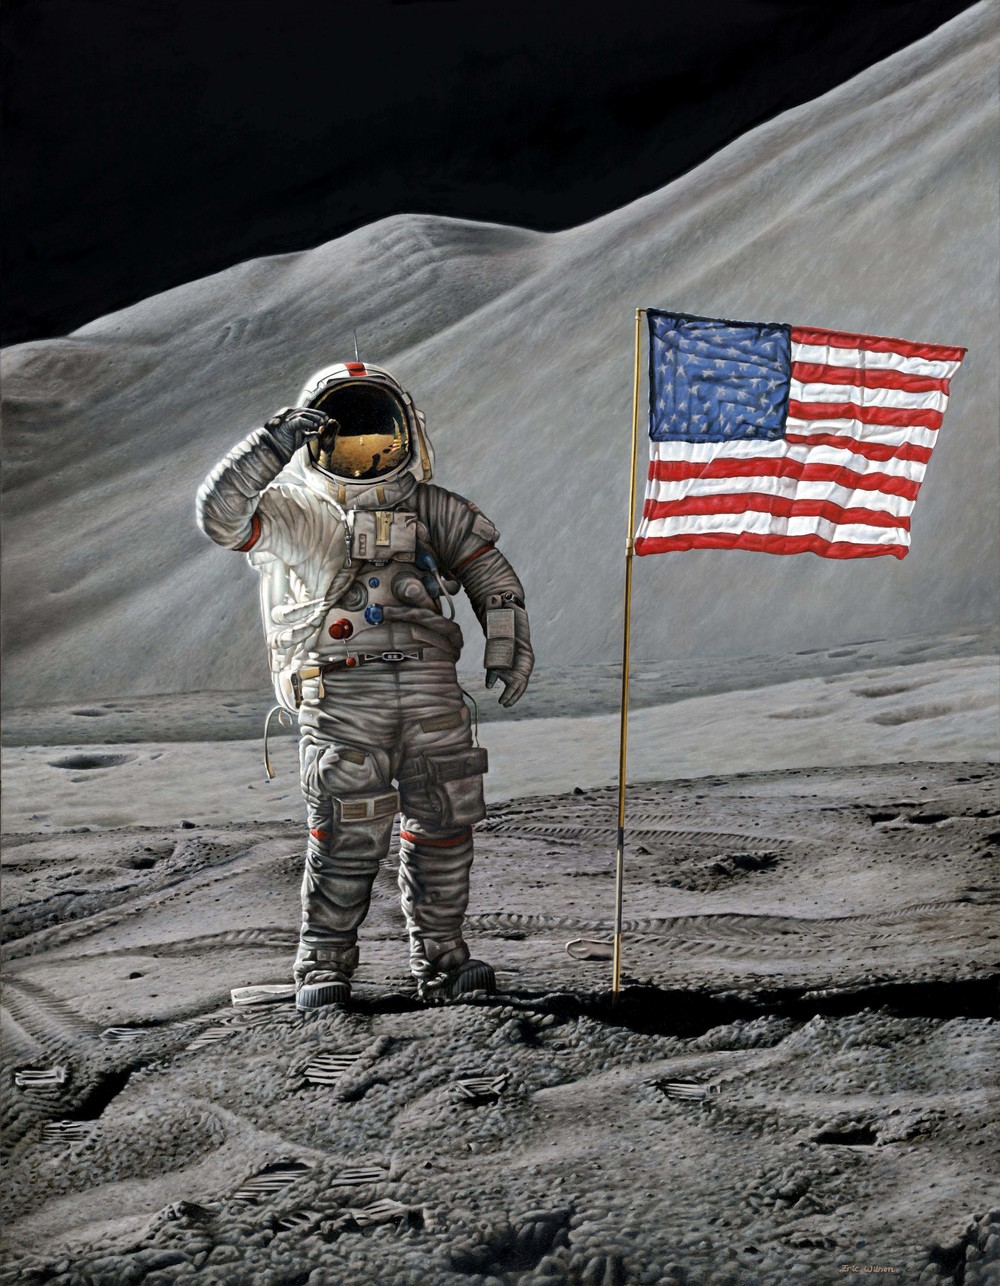 Commander Dave Scott, Apollo 15, salutes the flag at the end of EVA 2 on 1st August 1971.